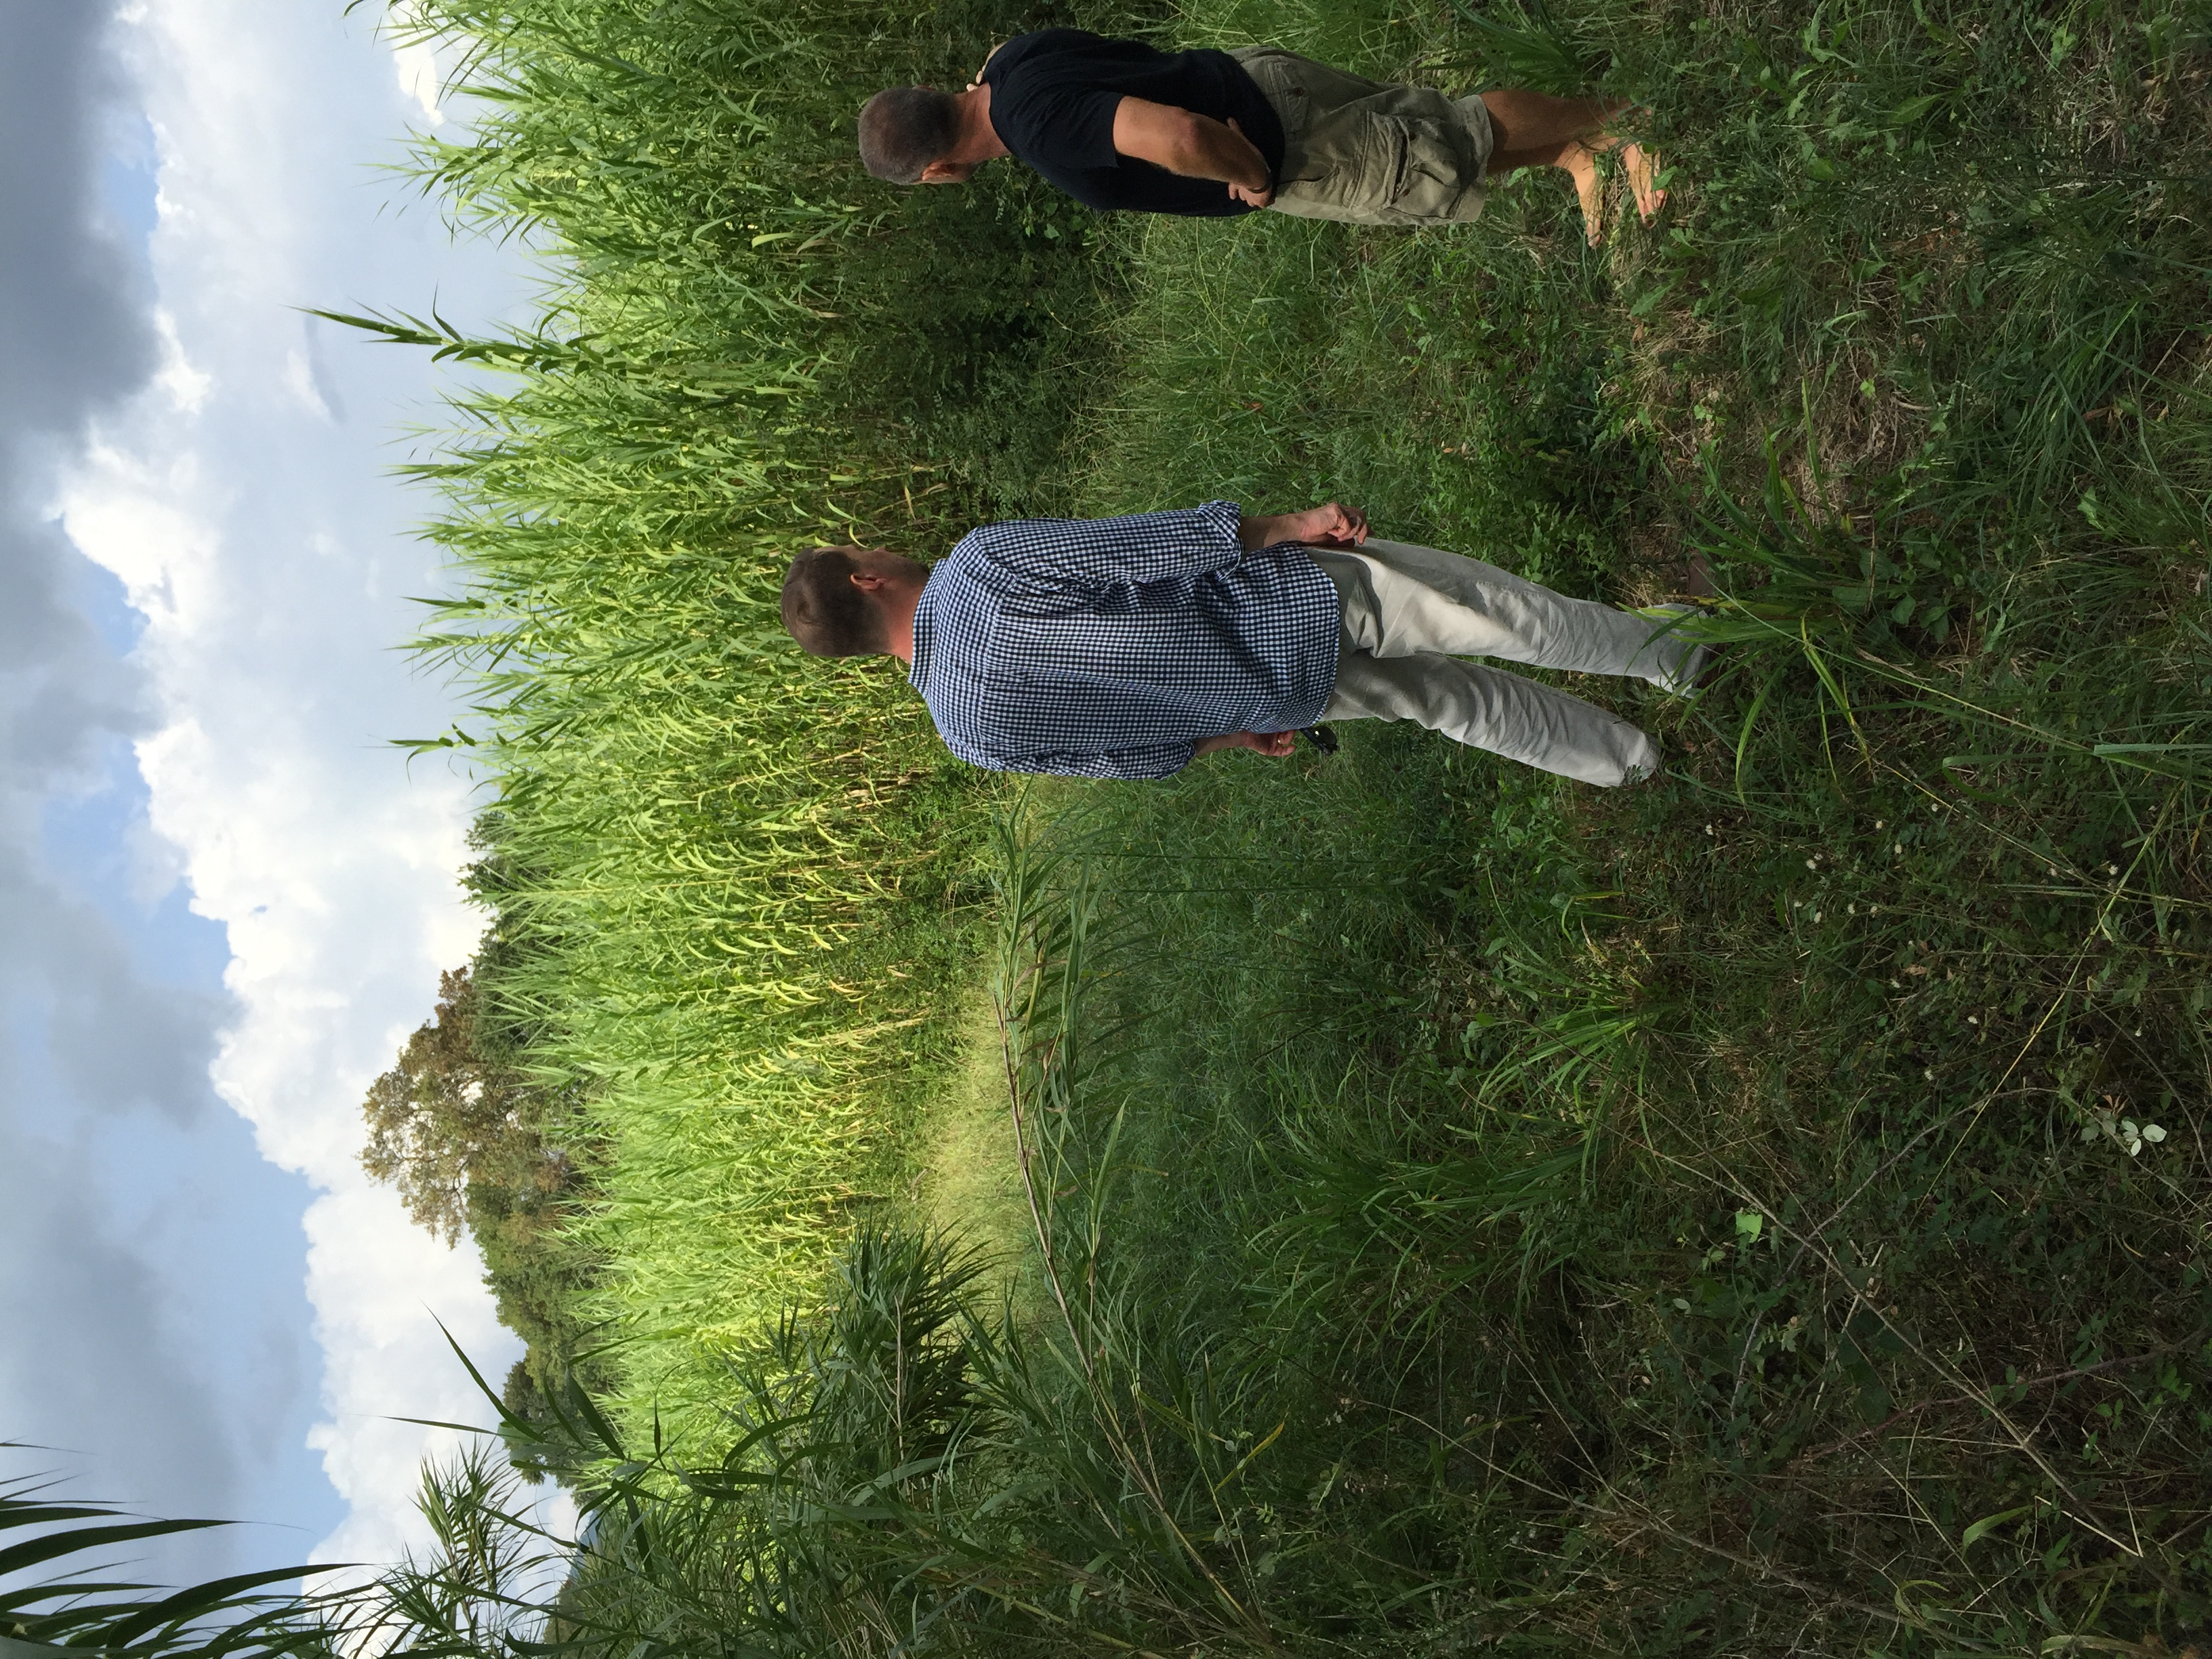 In the cane fields of Cogolin